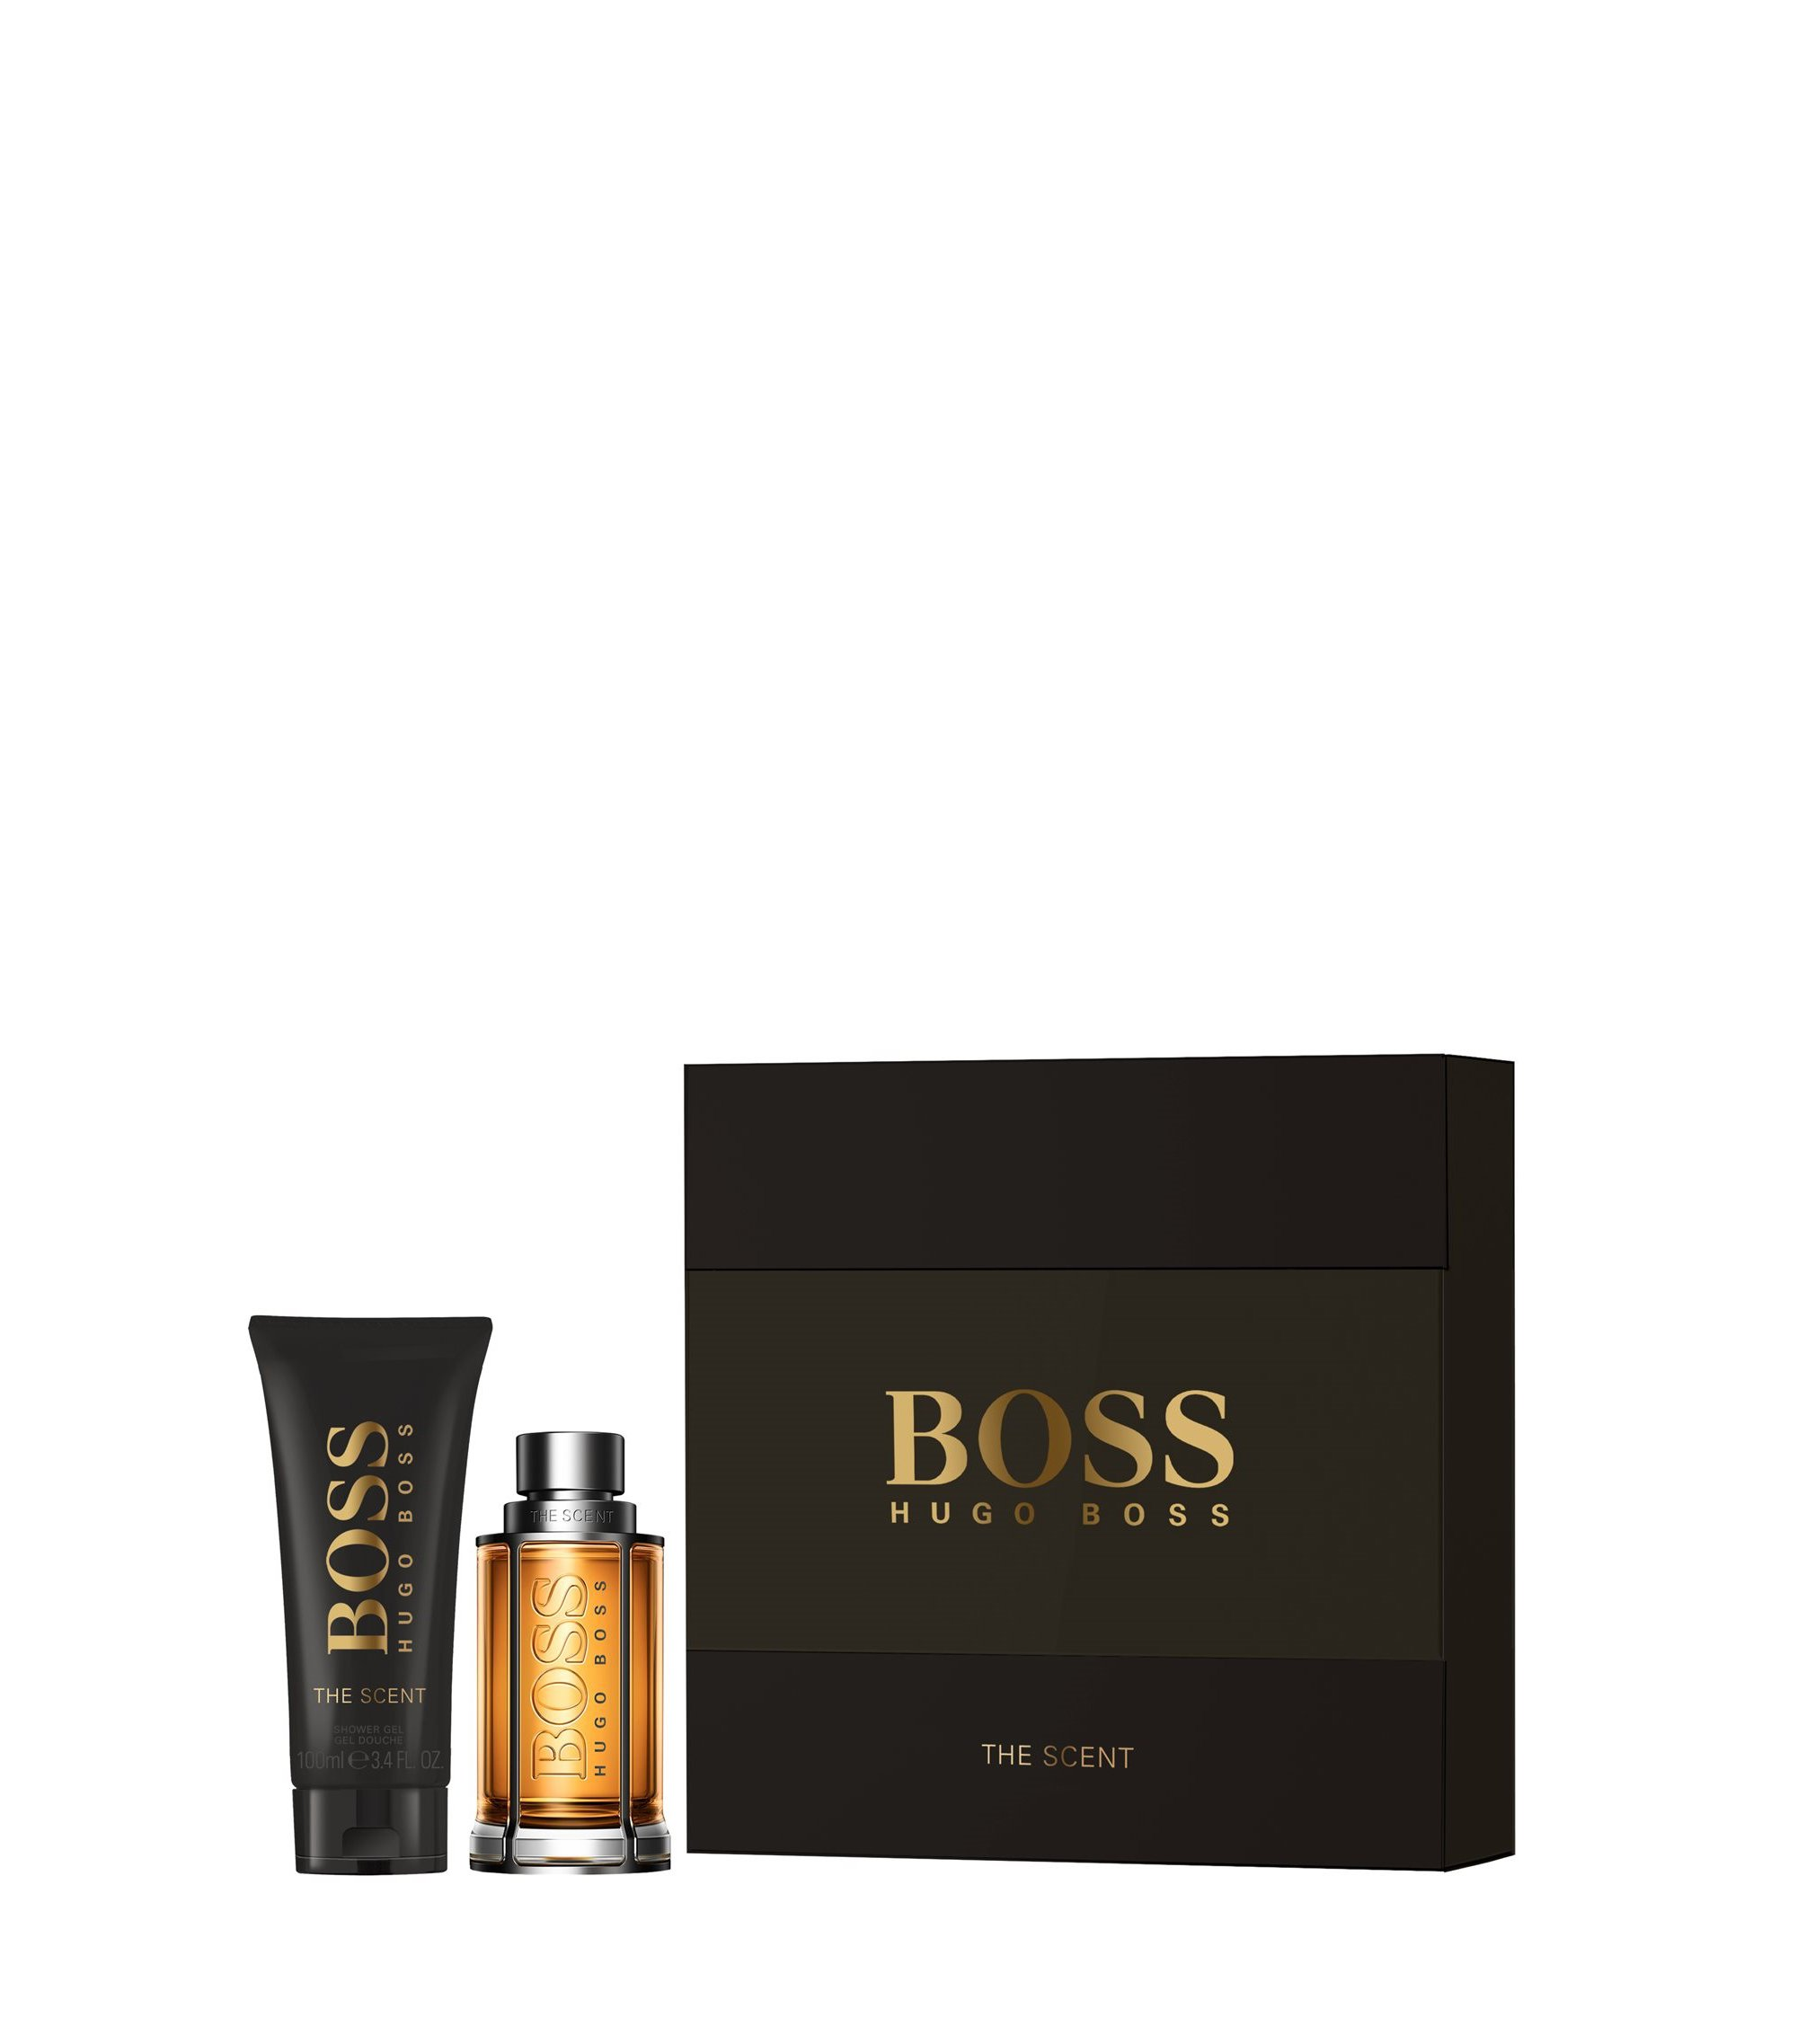 Duft BOSS The Scent im Geschenk-Set, Assorted-Pre-Pack